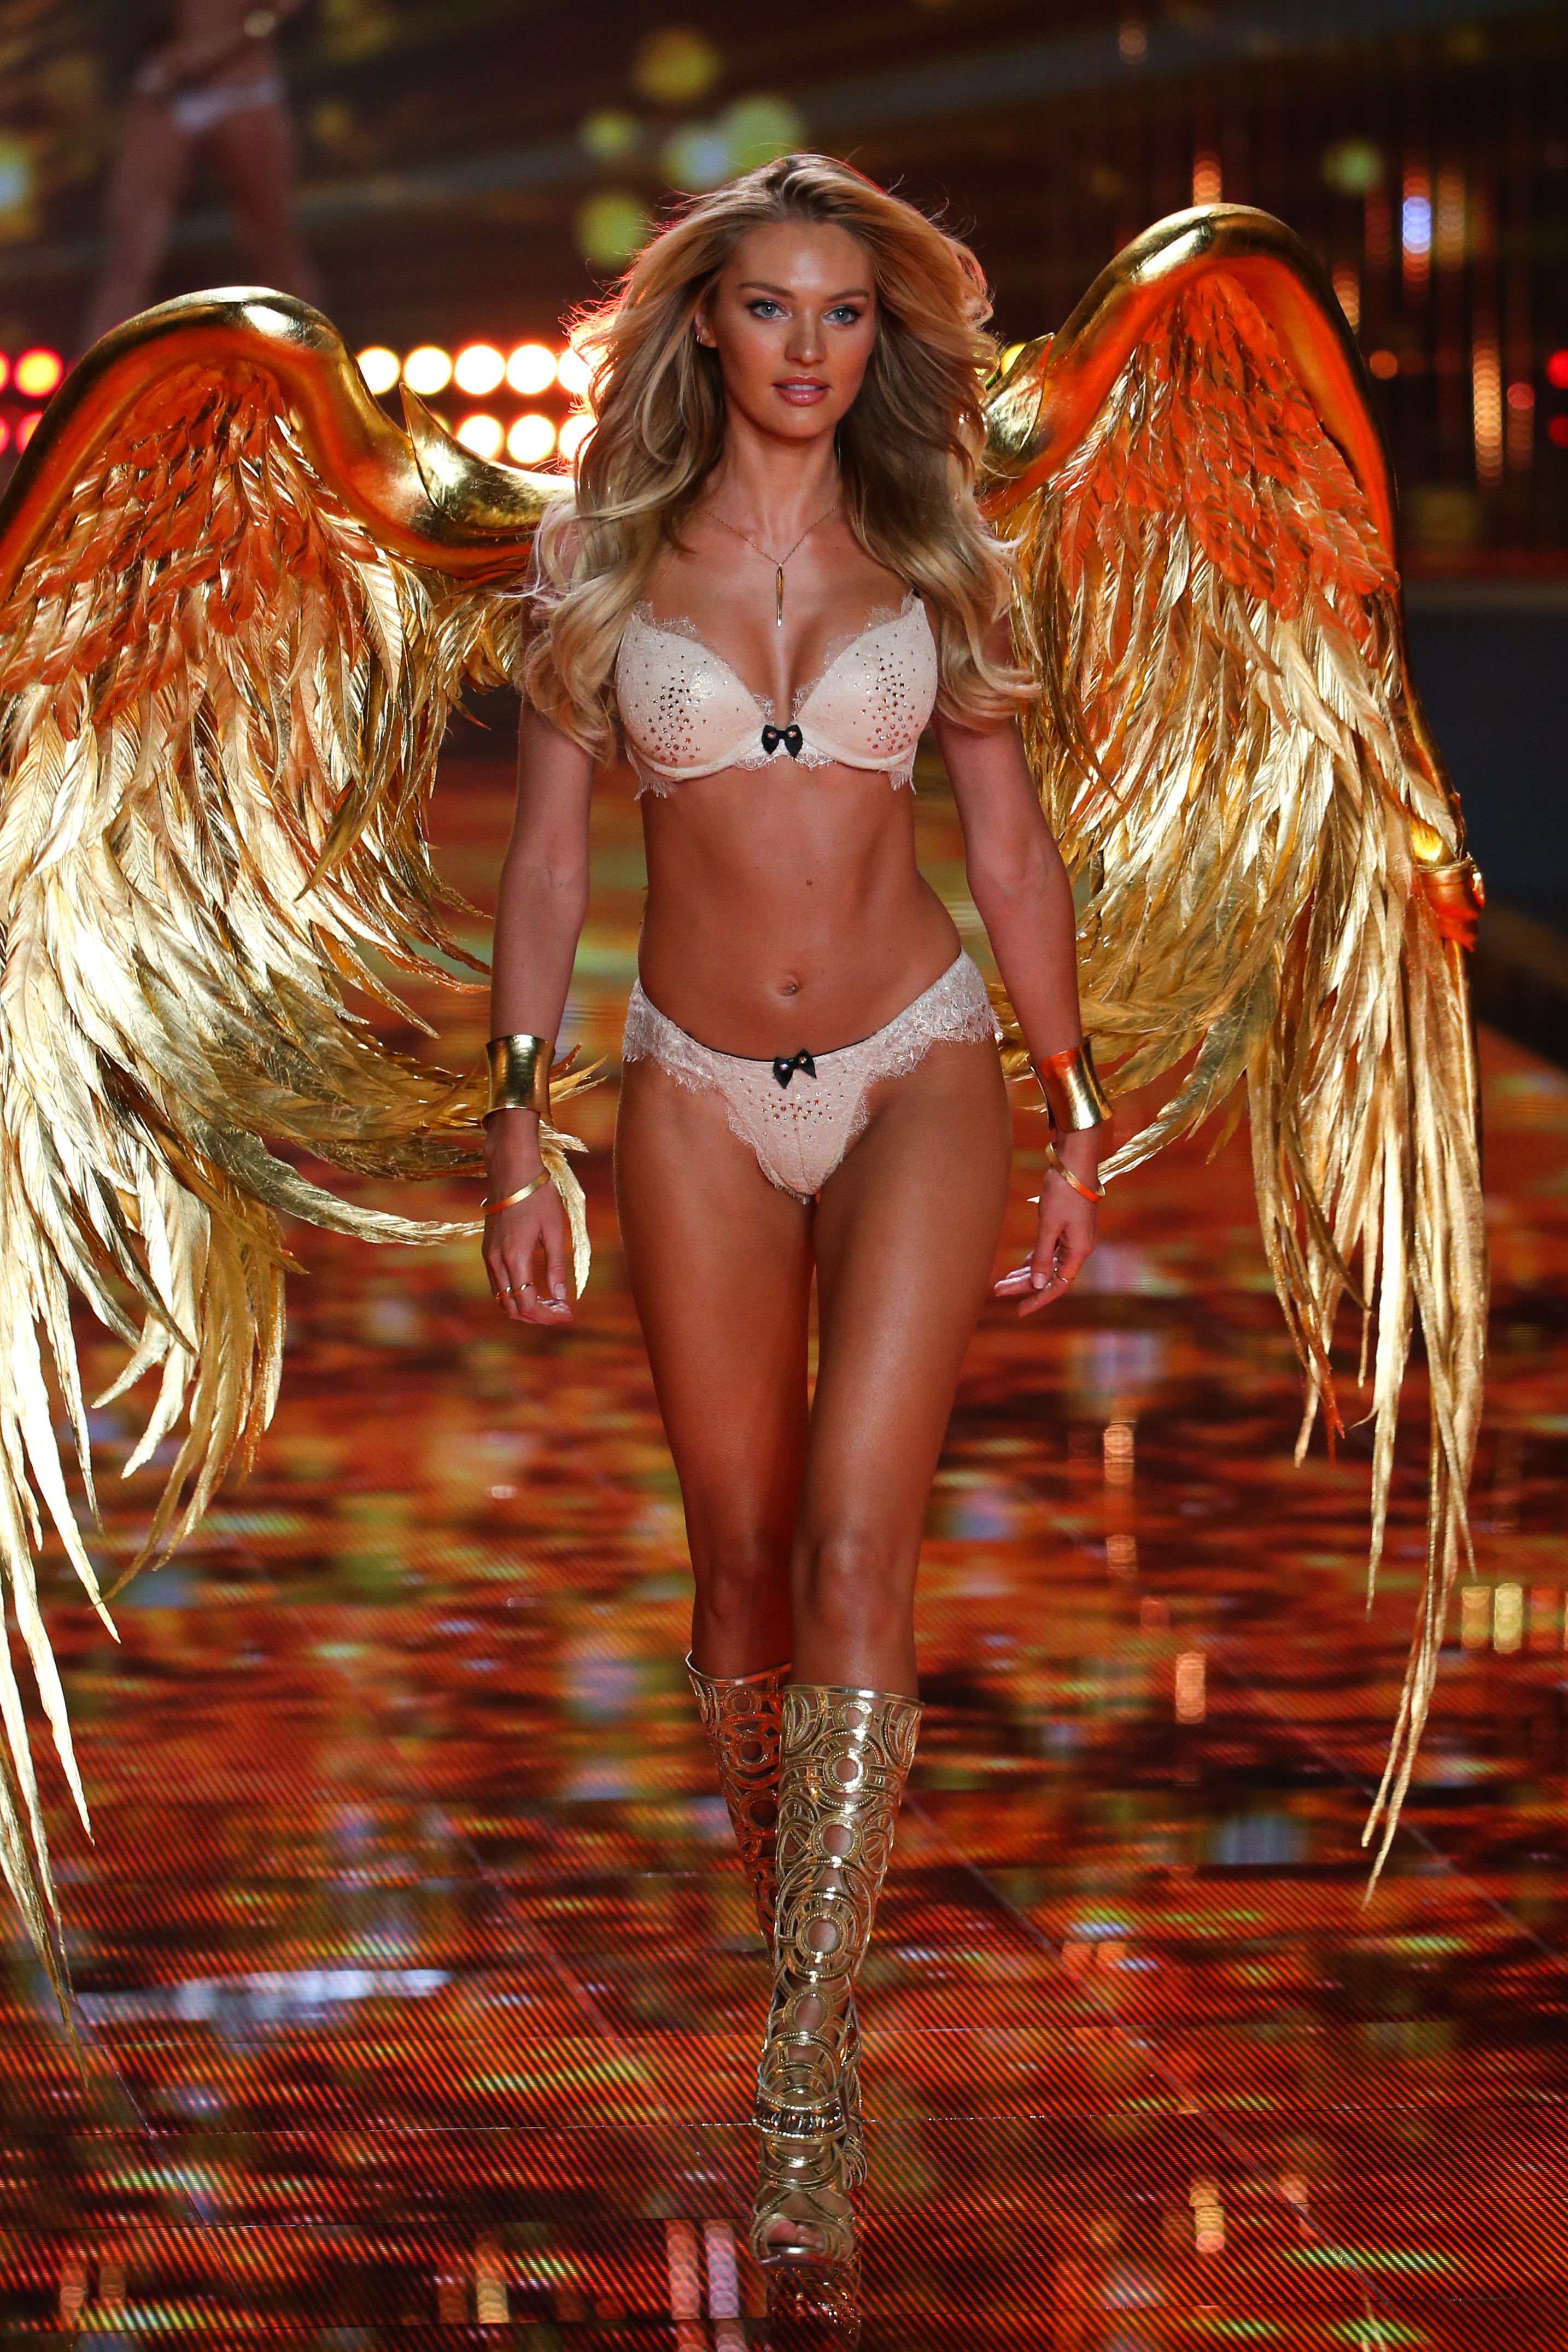 Famous Victoria's Secret South African Supermodel Candice Swanepoel Modeling For The Victoria's Secret Fashion Show In Beautiful London, England.